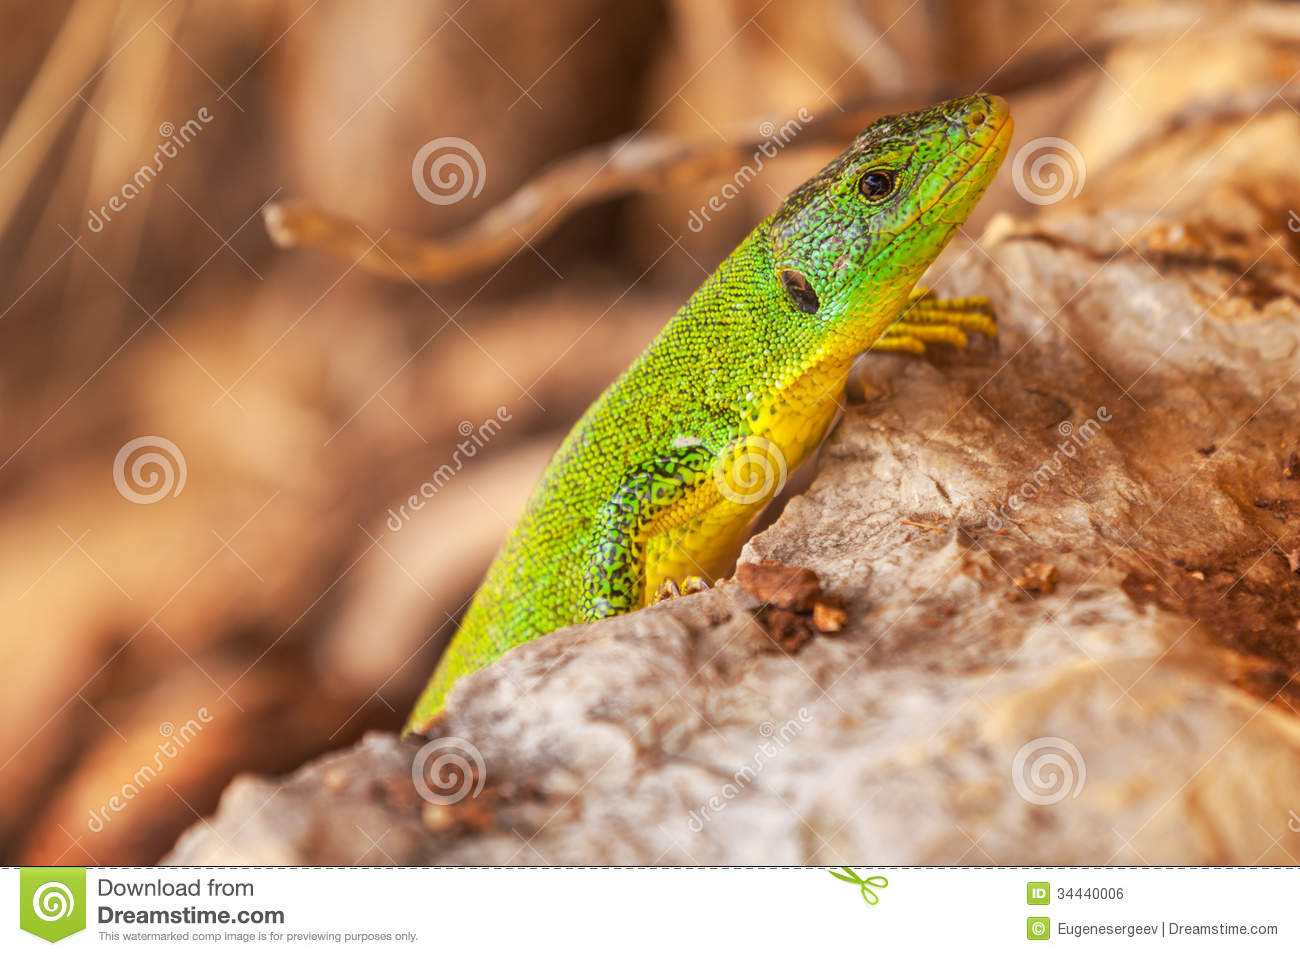 Green lizard sits on dry stones